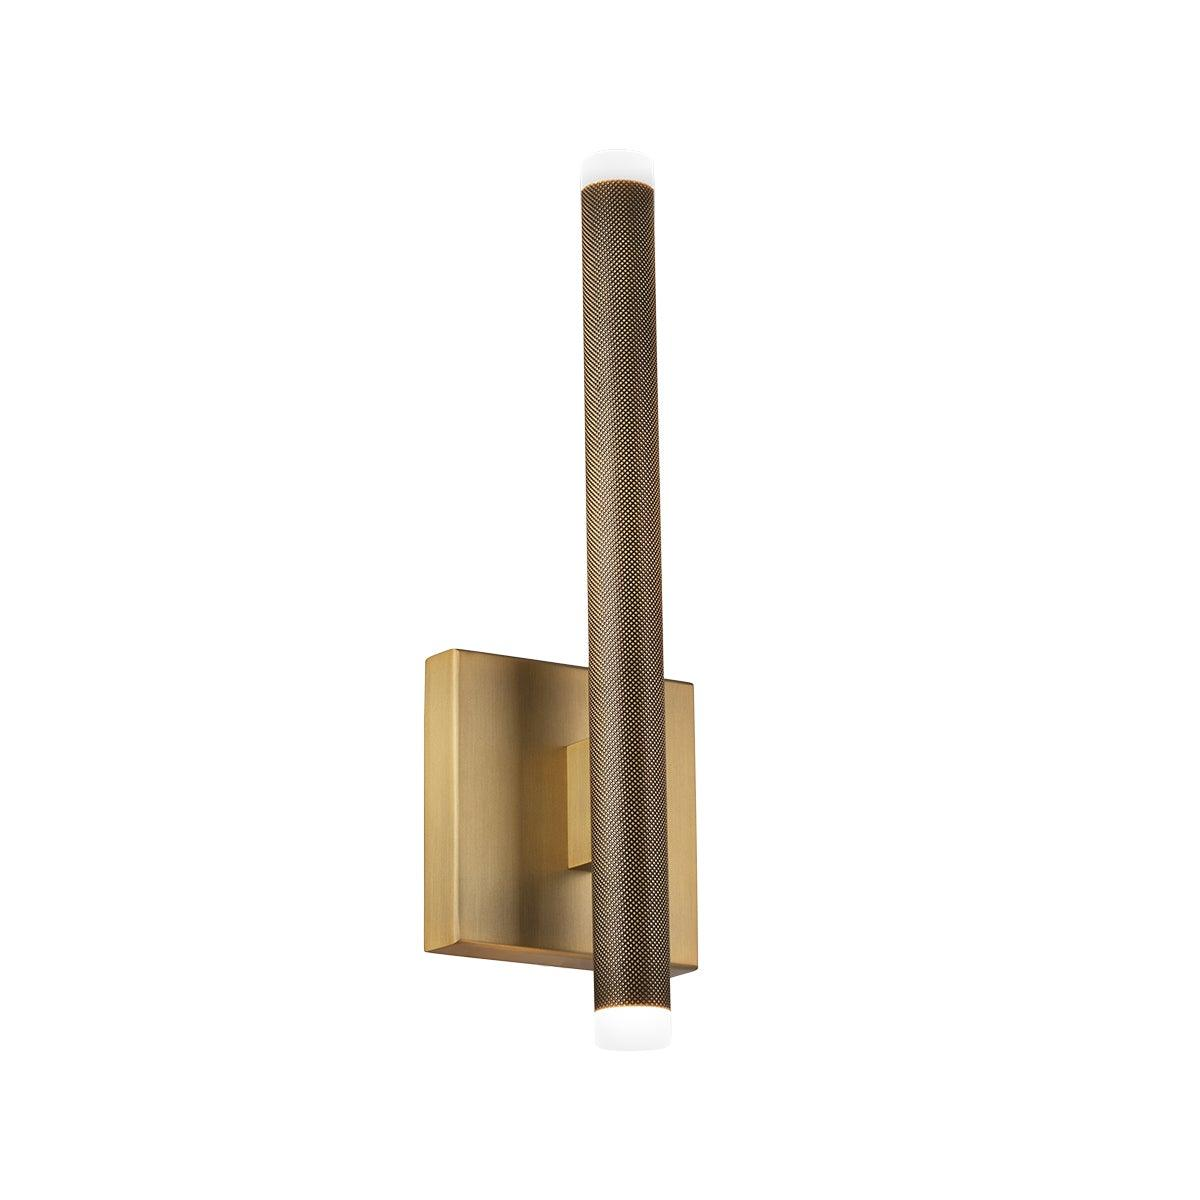 Modern Forms Canada - WS-67015-AB - LED Bathroom Vanity - Burning Man - Aged Brass